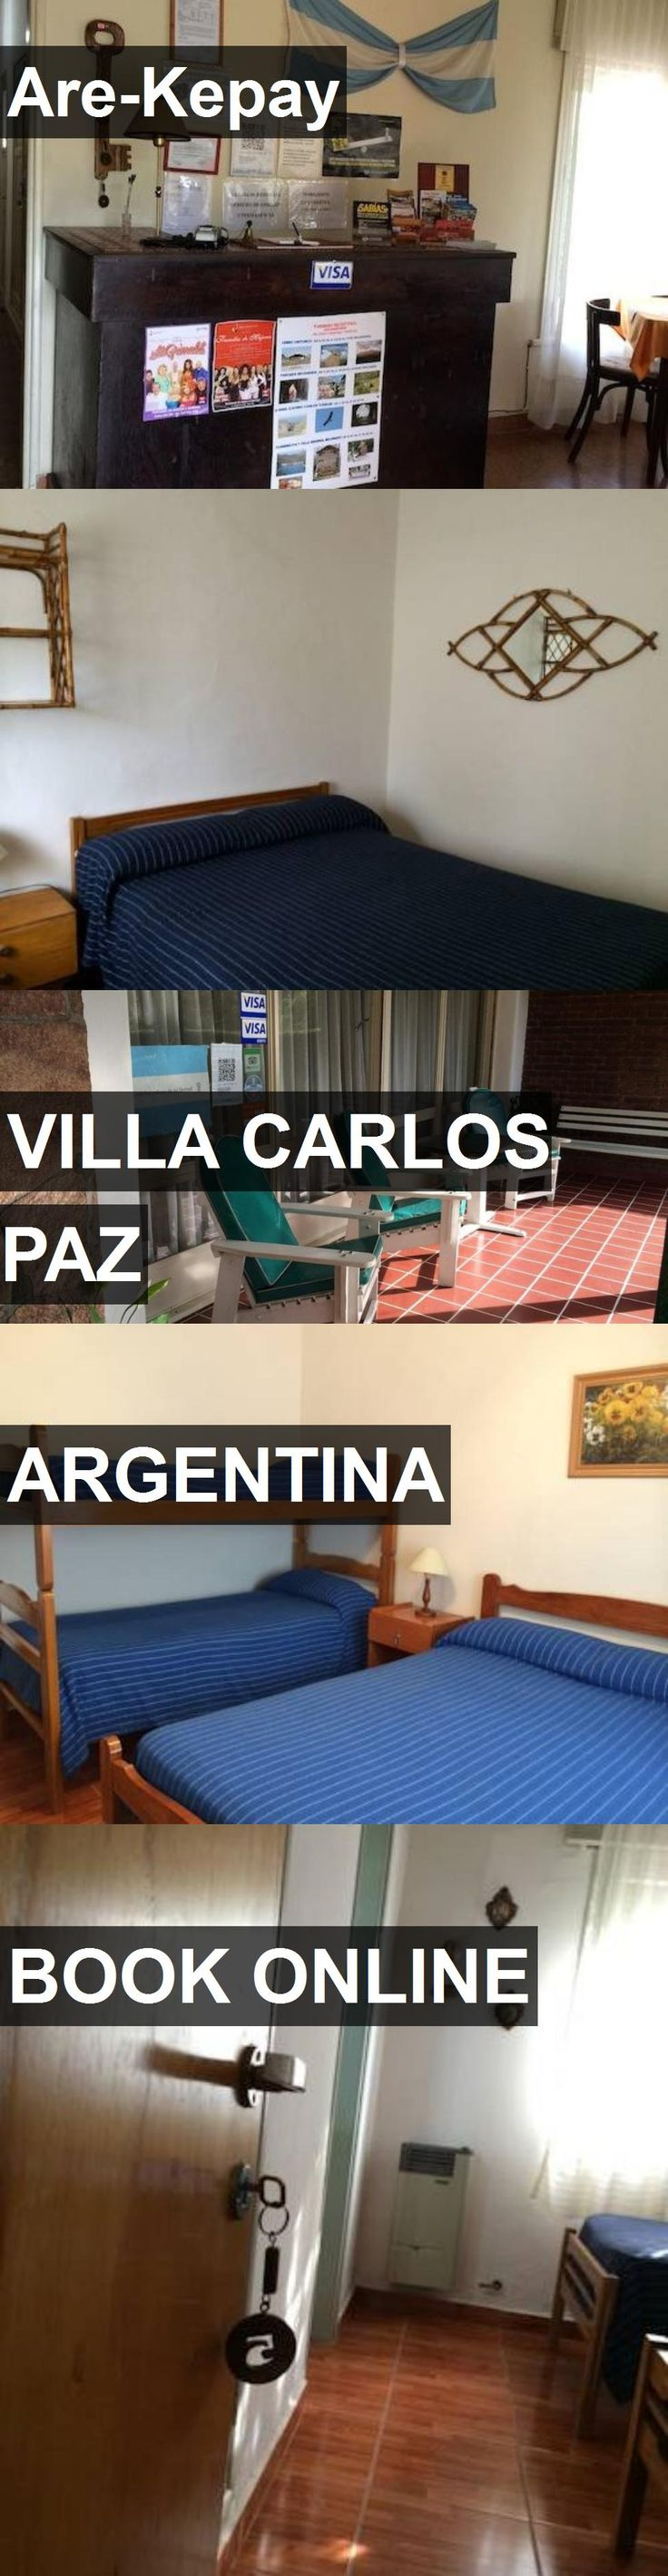 Hotel Are-Kepay in Villa Carlos Paz, Argentina. For more information, photos, reviews and best prices please follow the link. #Argentina #VillaCarlosPaz #travel #vacation #hotel